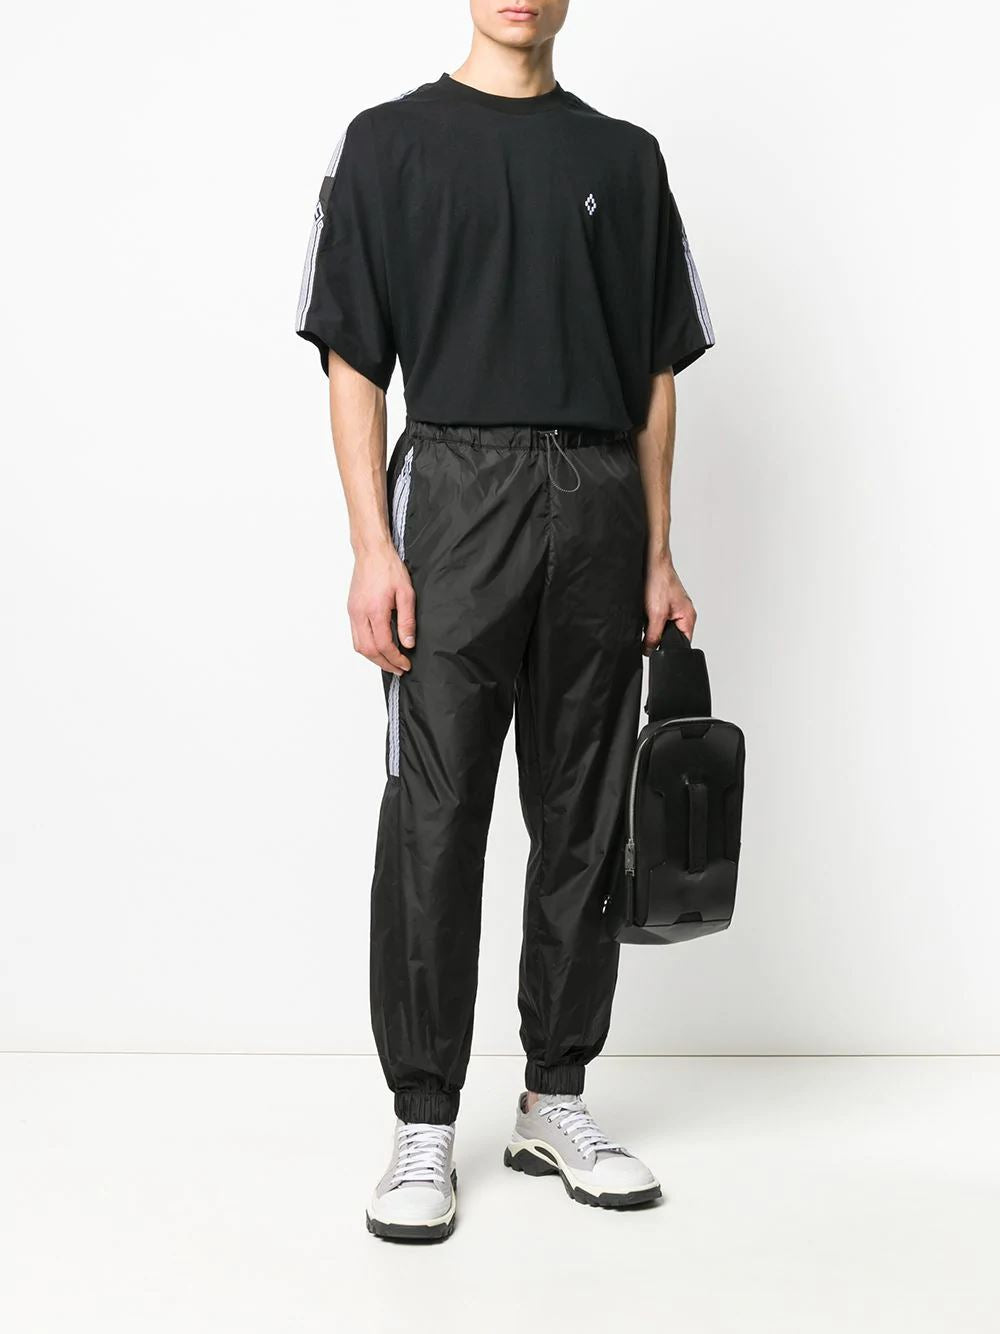 MARCELO BURLON tape logo track pants - Maison De Fashion